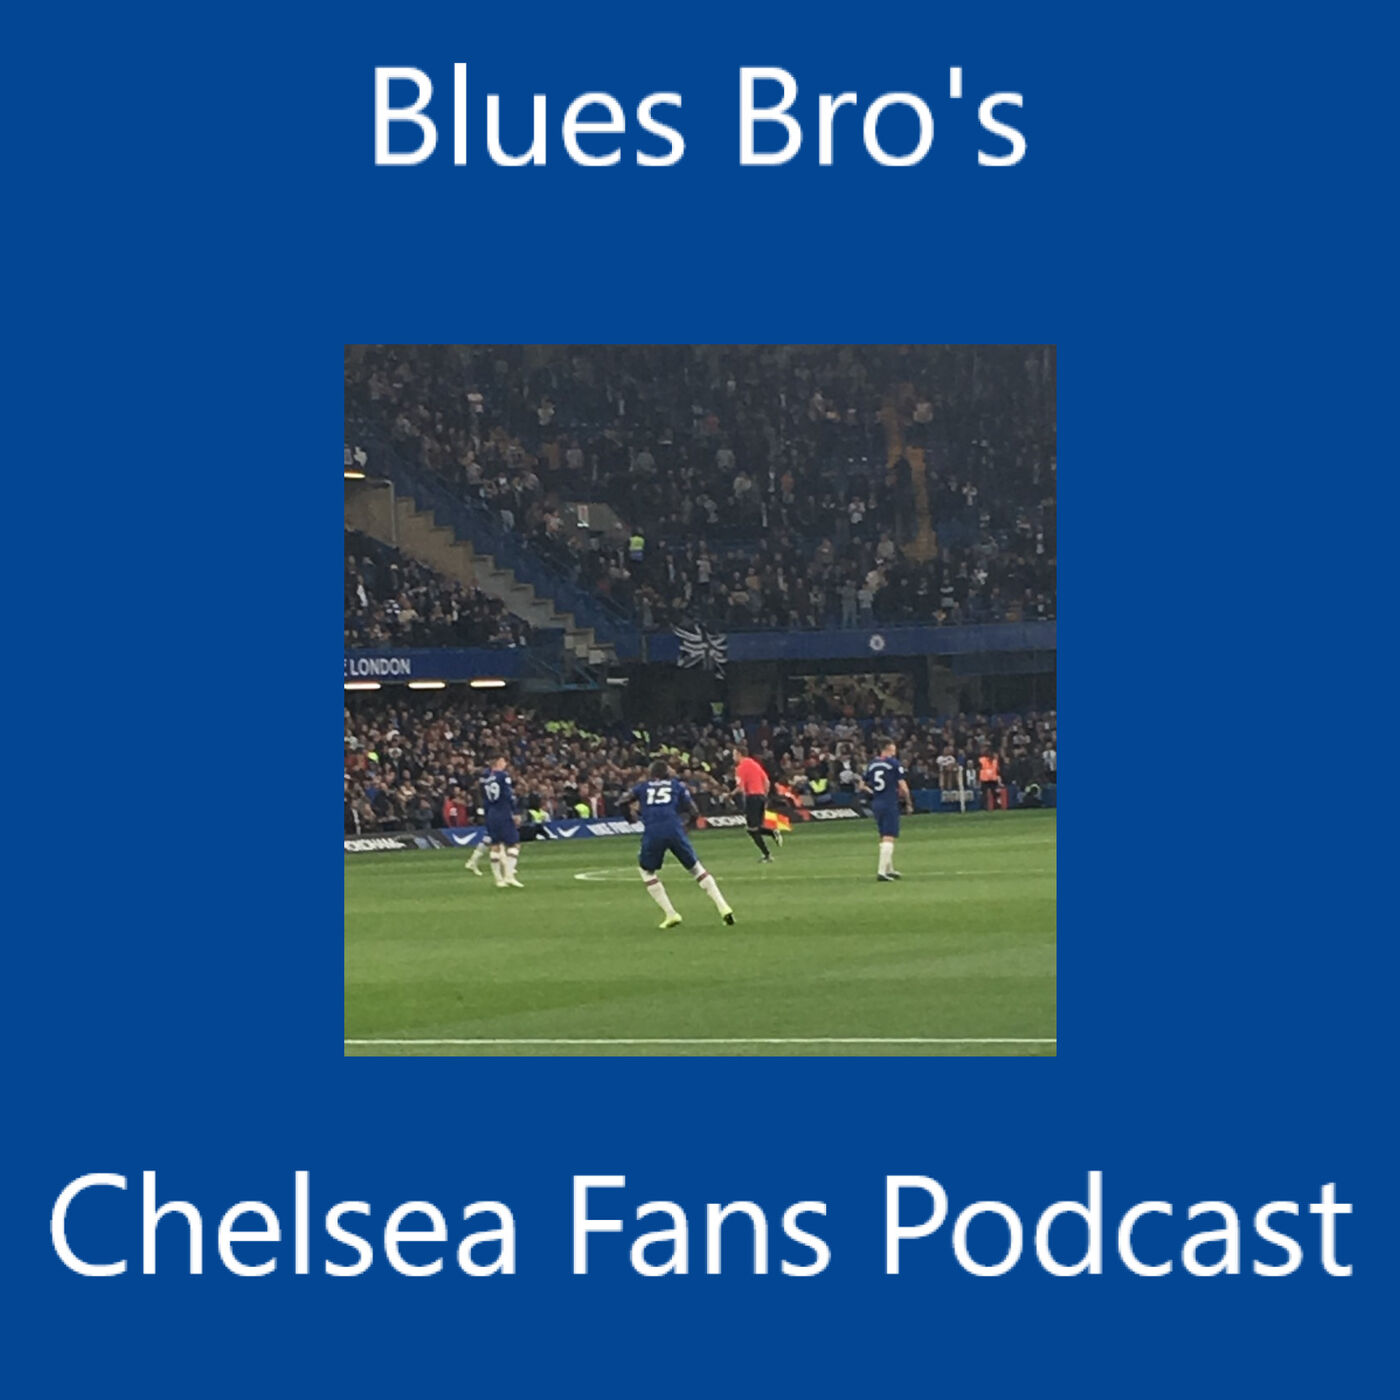 Blues Bro's Chelsea Fans Podcast